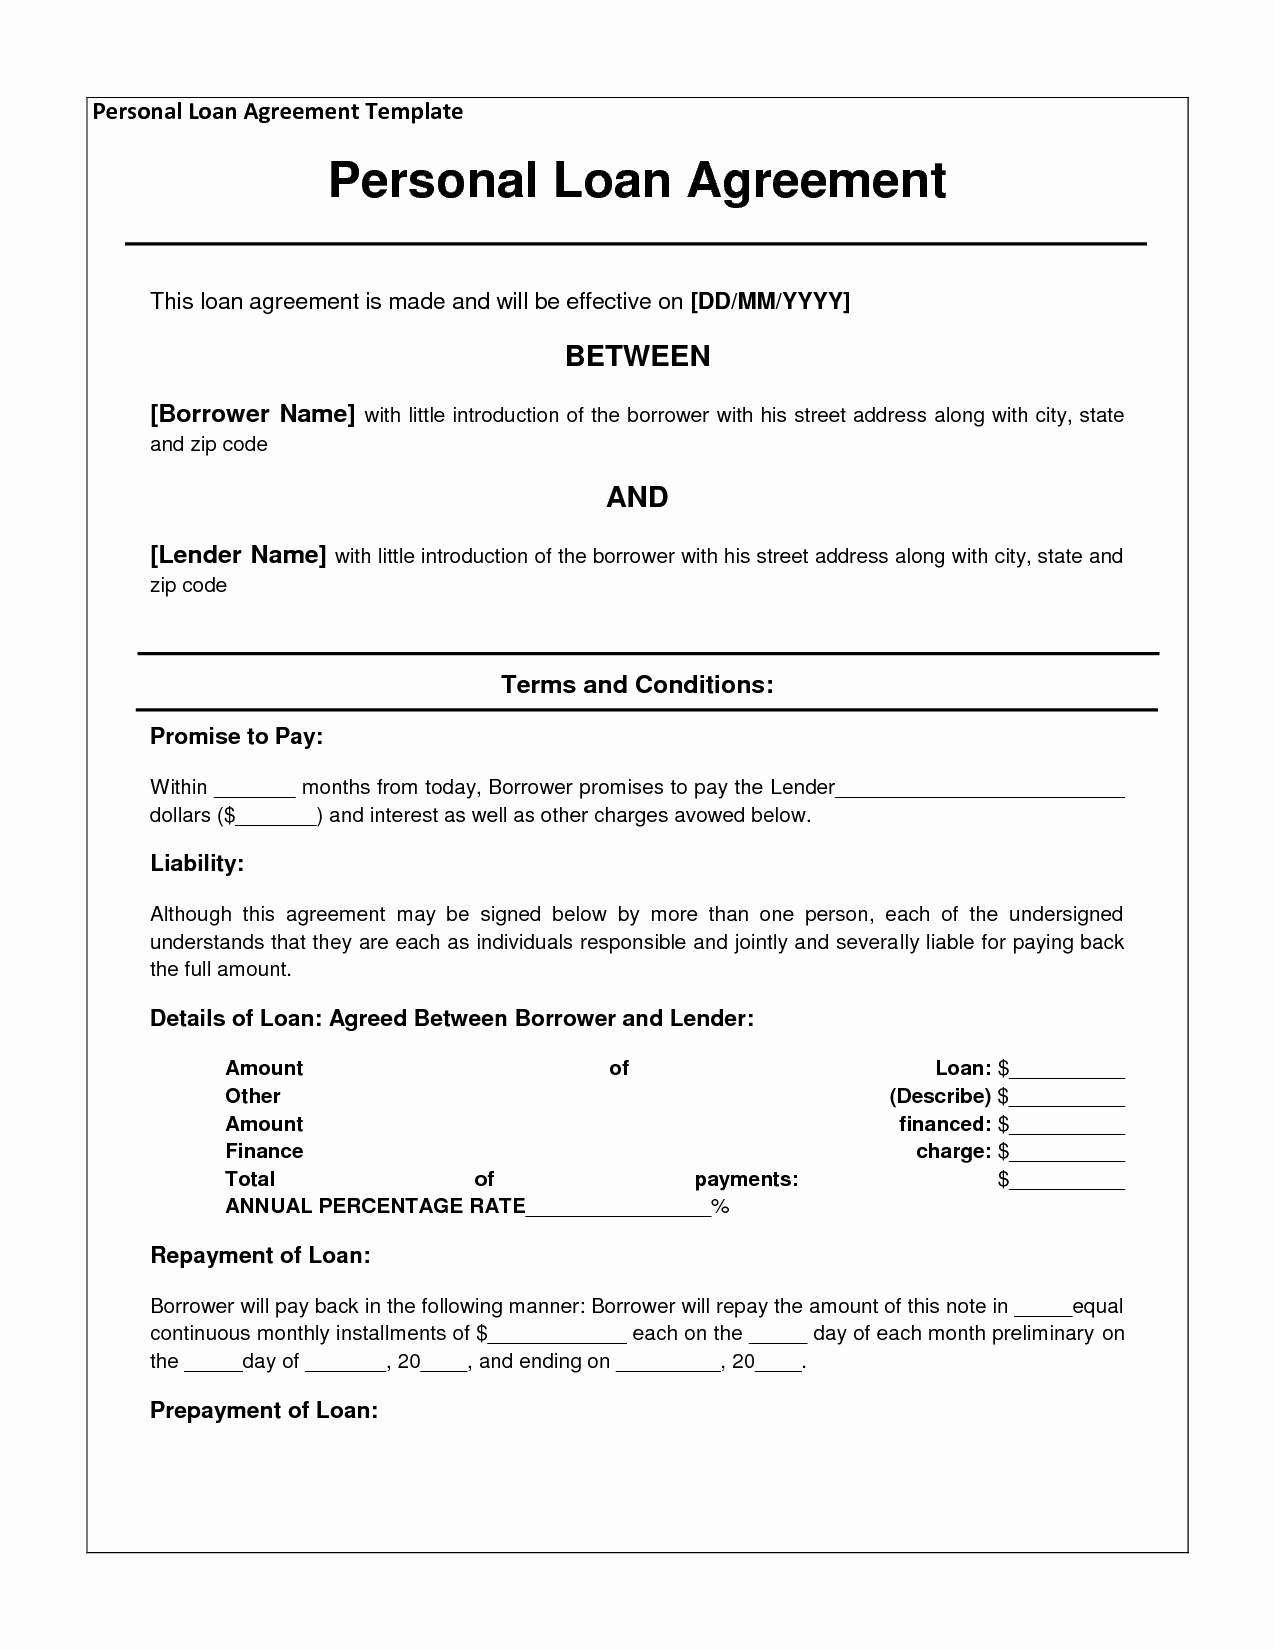 Personal Loan Agreement Template Free Unique 14 Loan Agreement Templates Excel Pdf formats